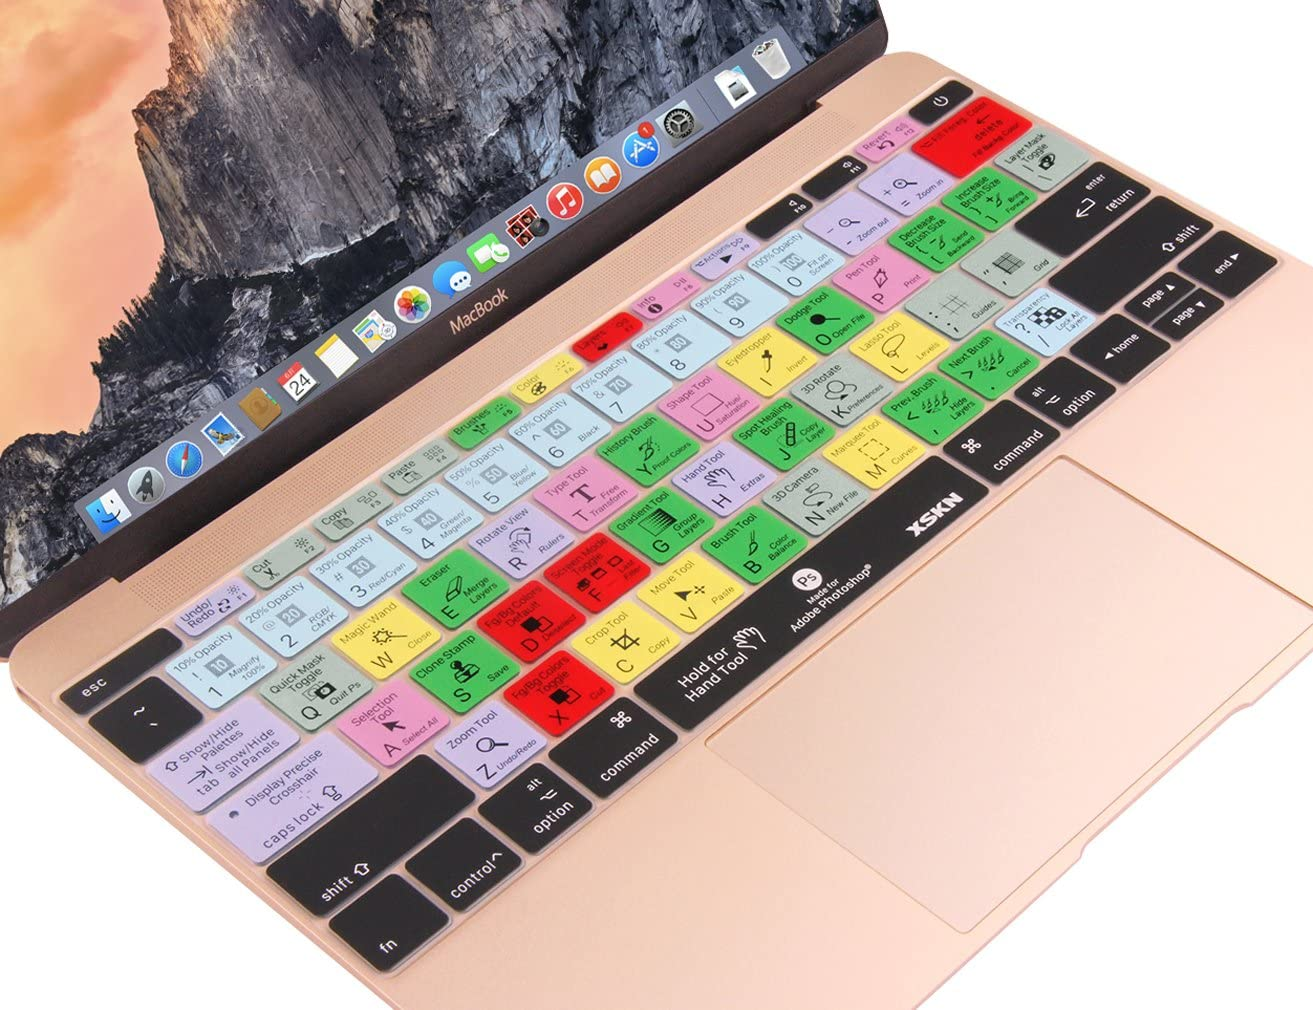 2016 Newest Version Model A1708, No Touch Bar Photoshop XSKN/2016 Shortcut/Design/Series/Keyboard/Skin/Cover for/New MacBook 12 2015 Model A1534 and New MacBook Pro 13 ,/US Version